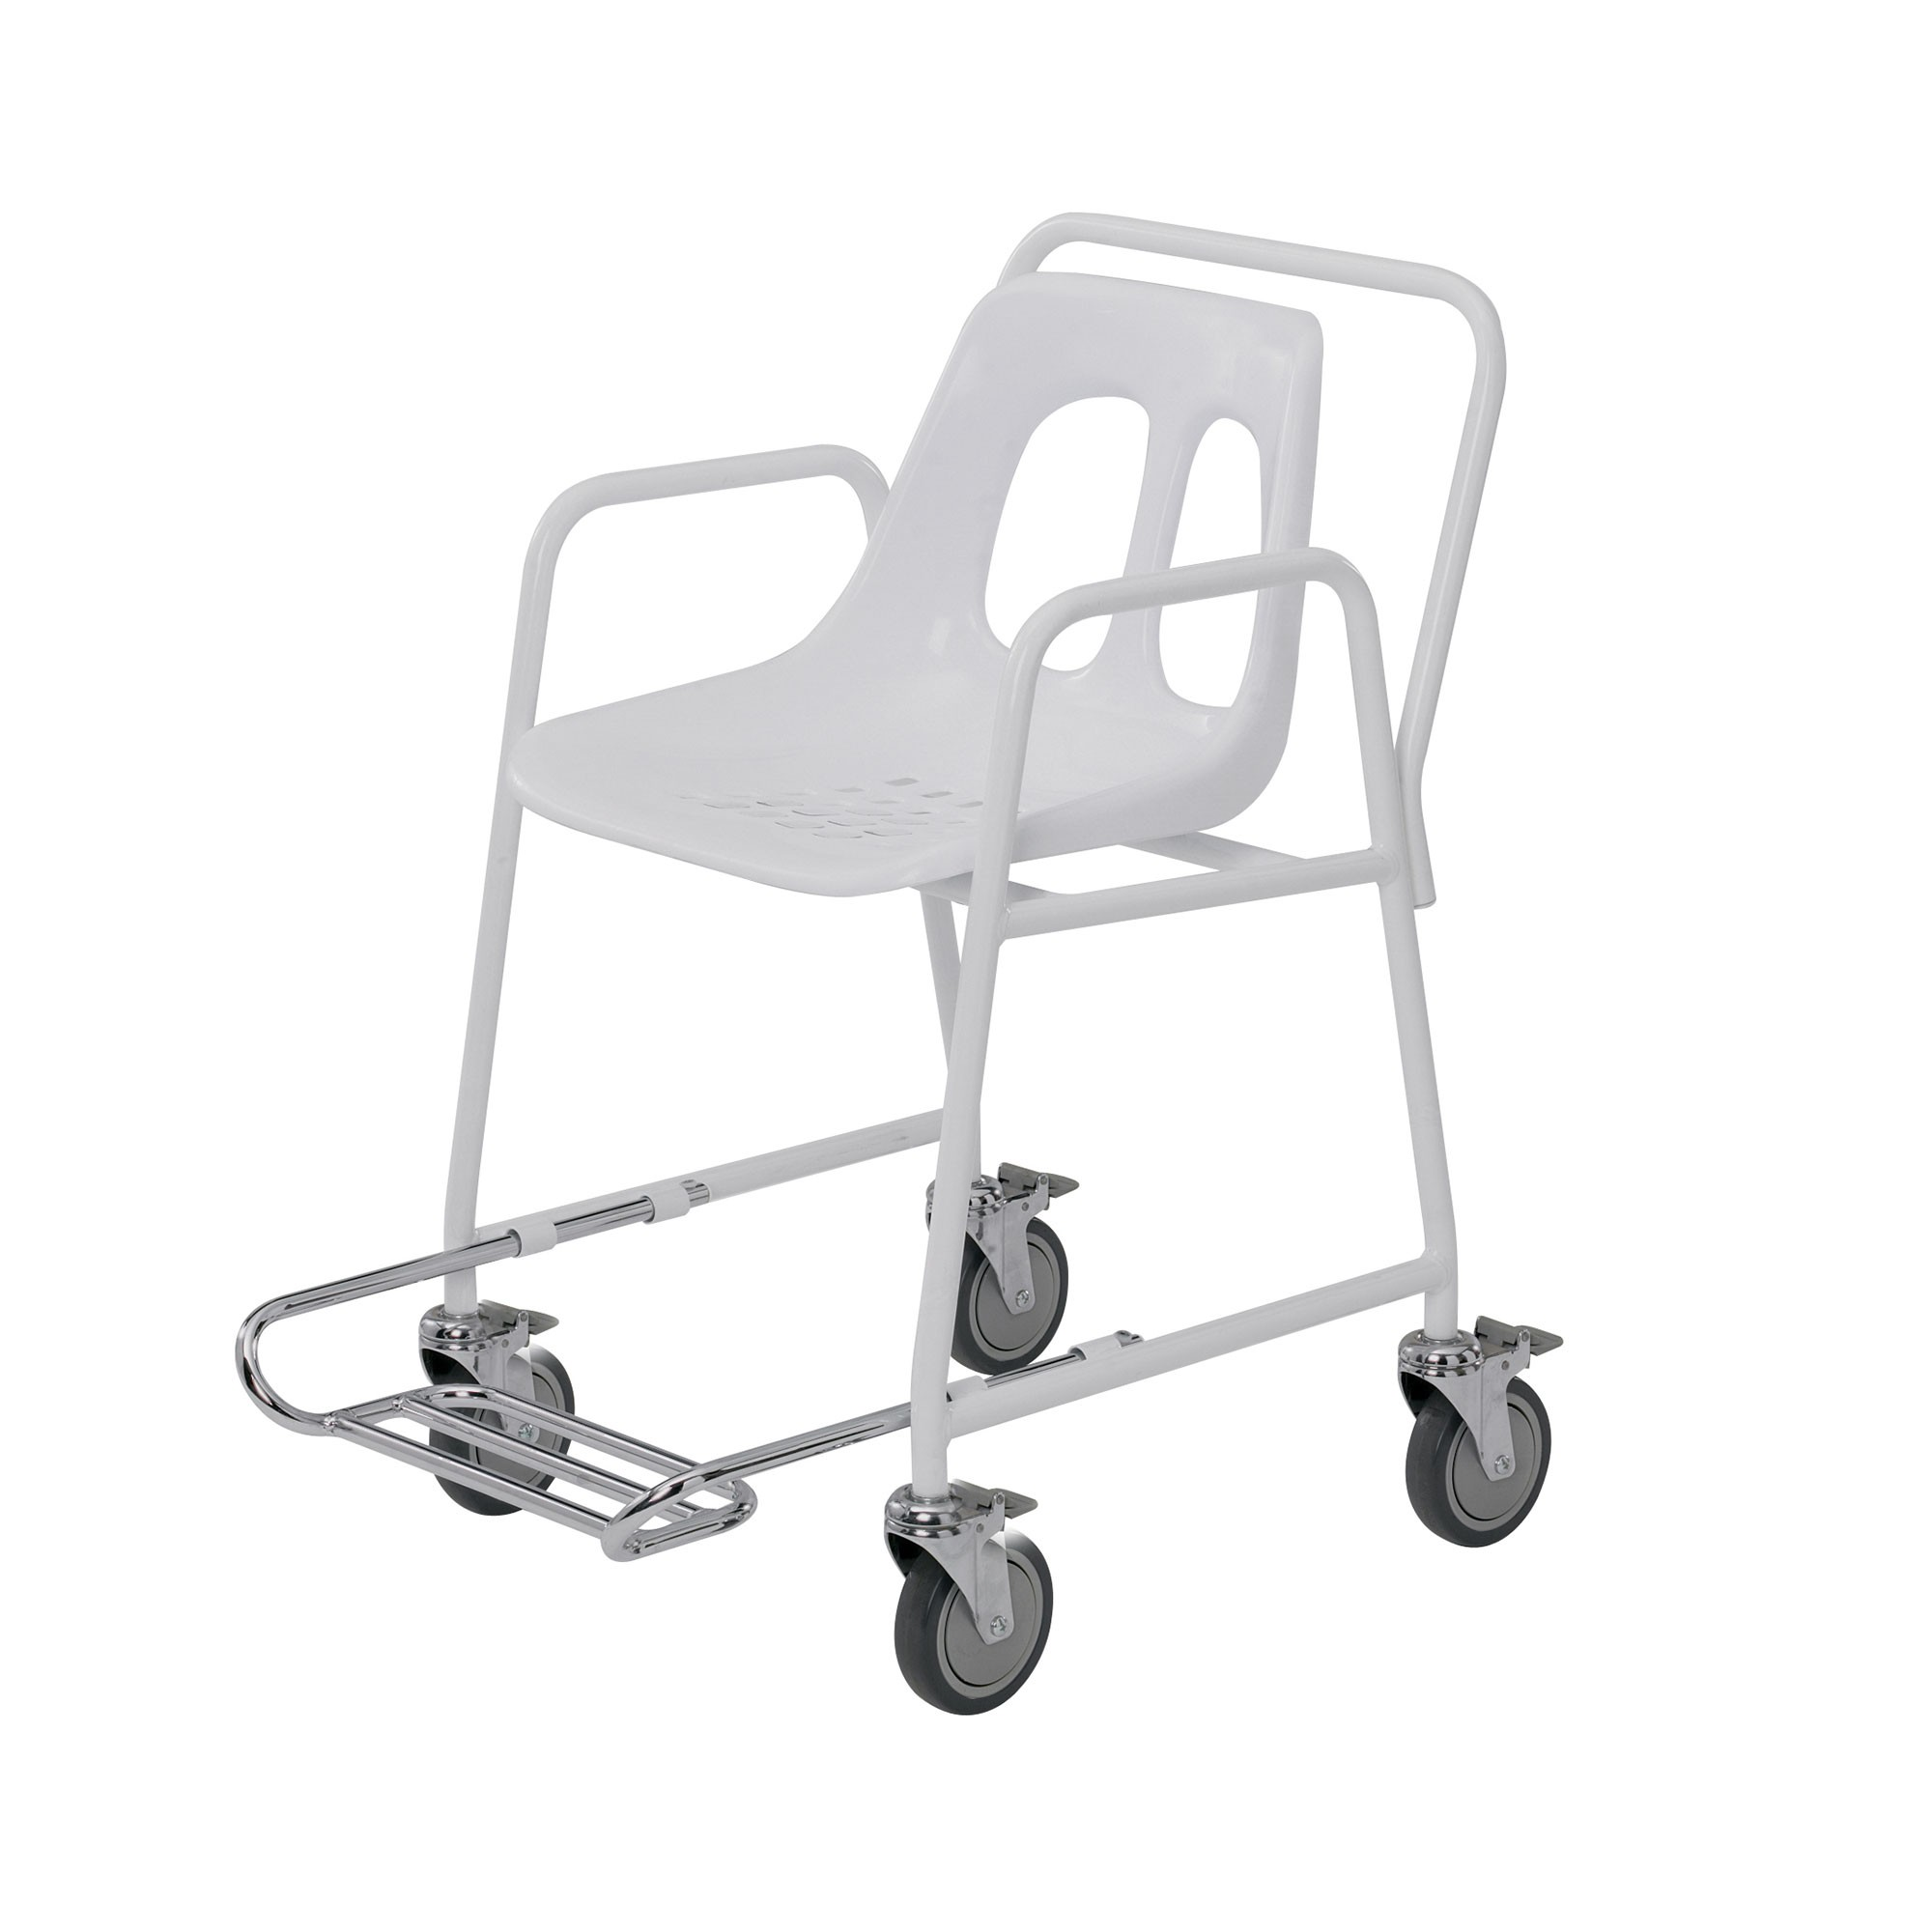 chair padded bscwba lb with capacity weight deluxe seats chairbackarms pro page shower arms cs sold of probasics bath products and